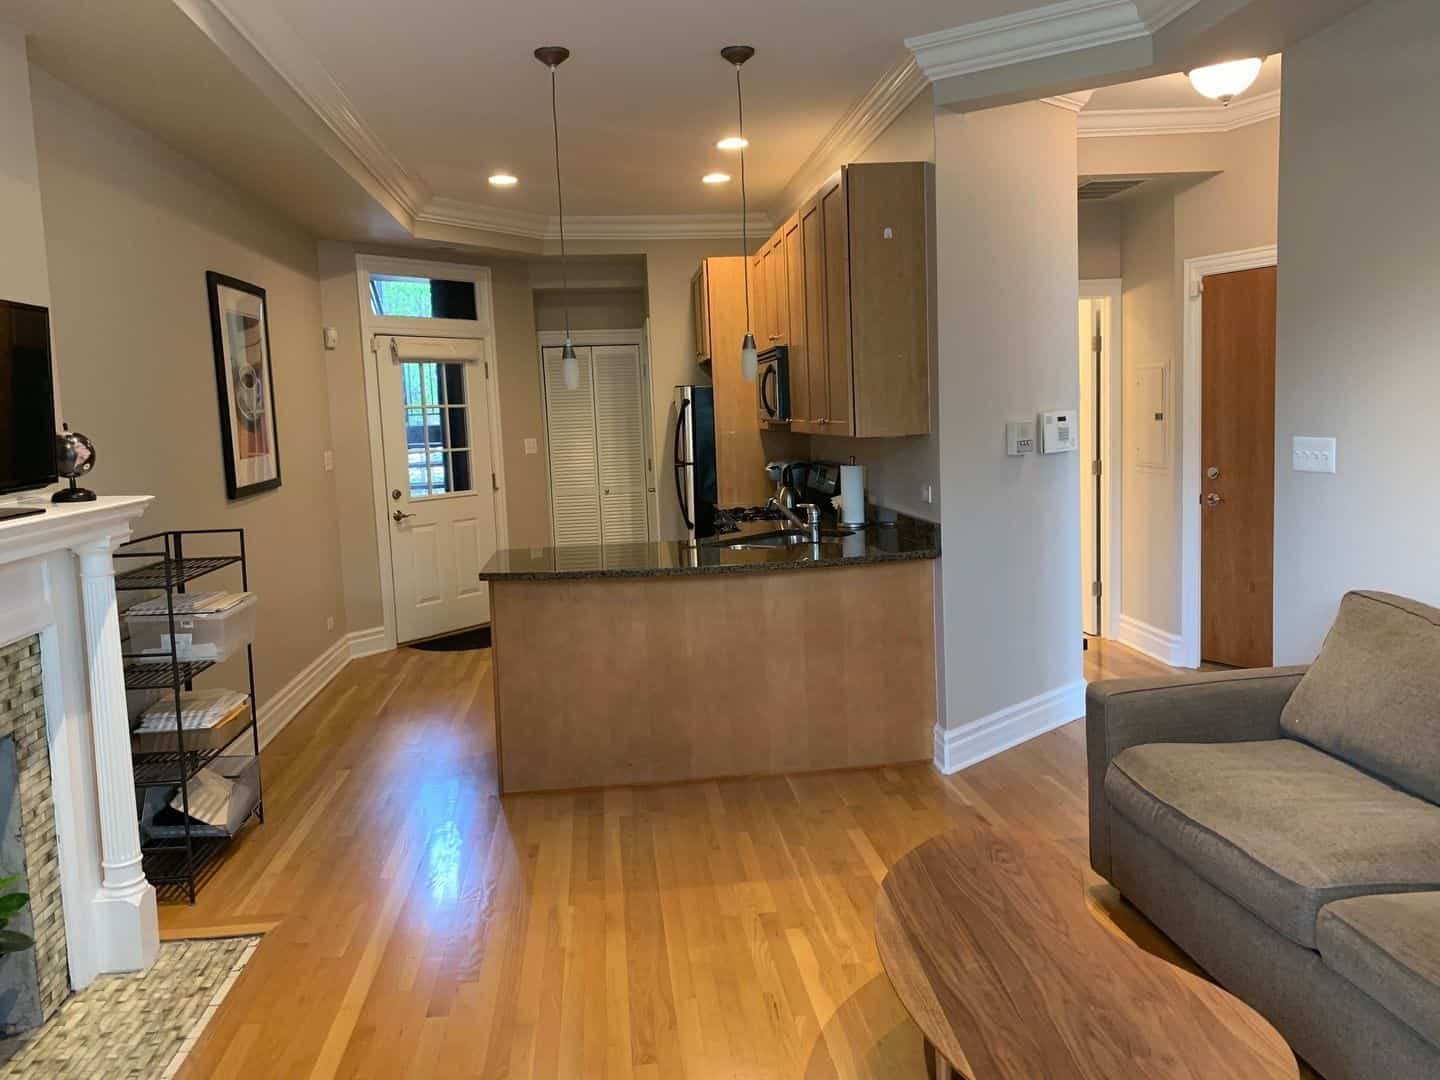 Photo of kitchen in Crilly Court condo at 1707 N Crilly Court #2W.